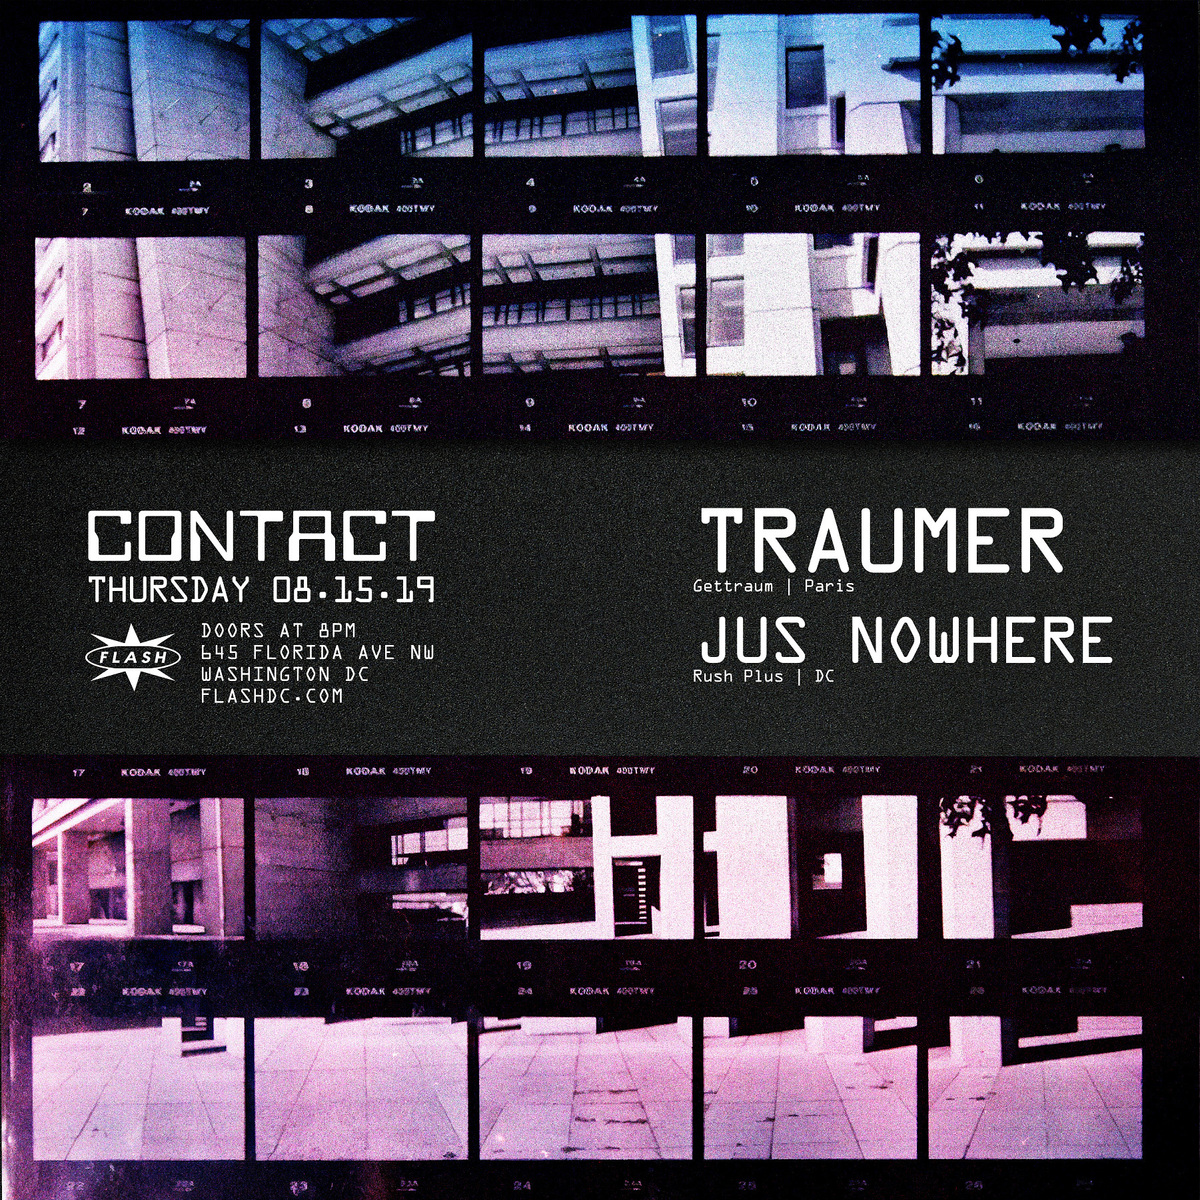 CONTACT: Traumer event thumbnail